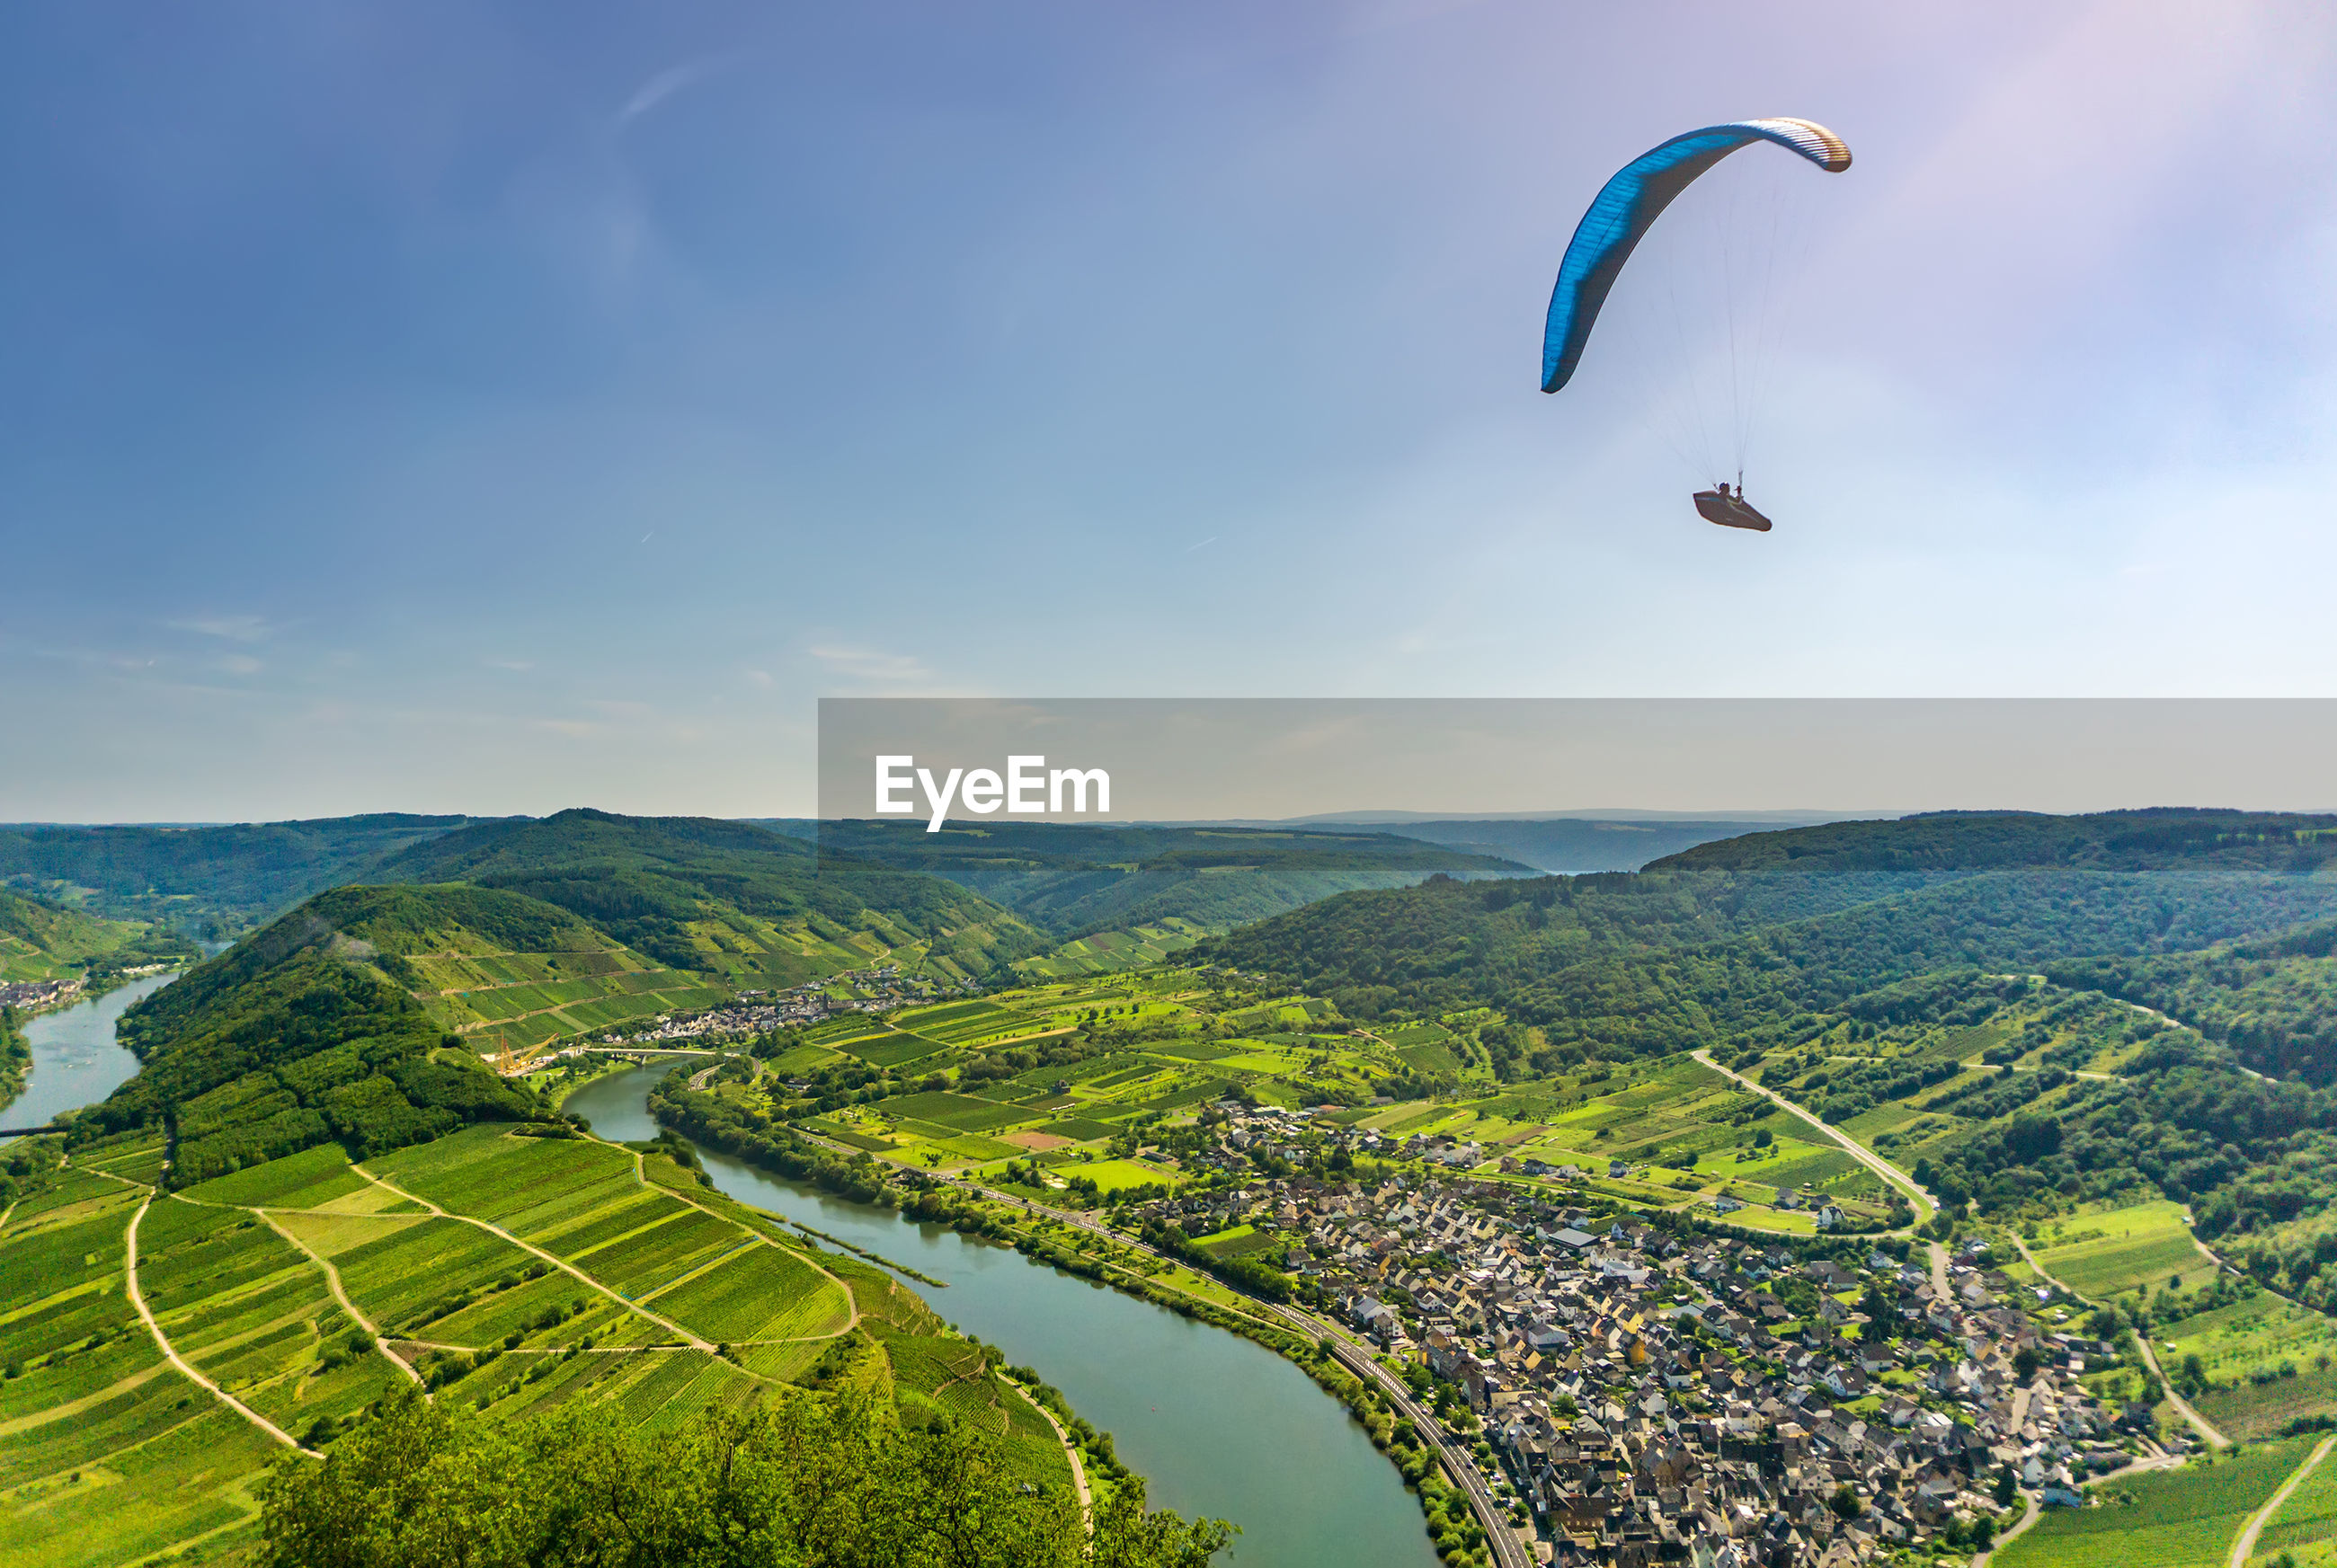 Paragliding - calmont, germany